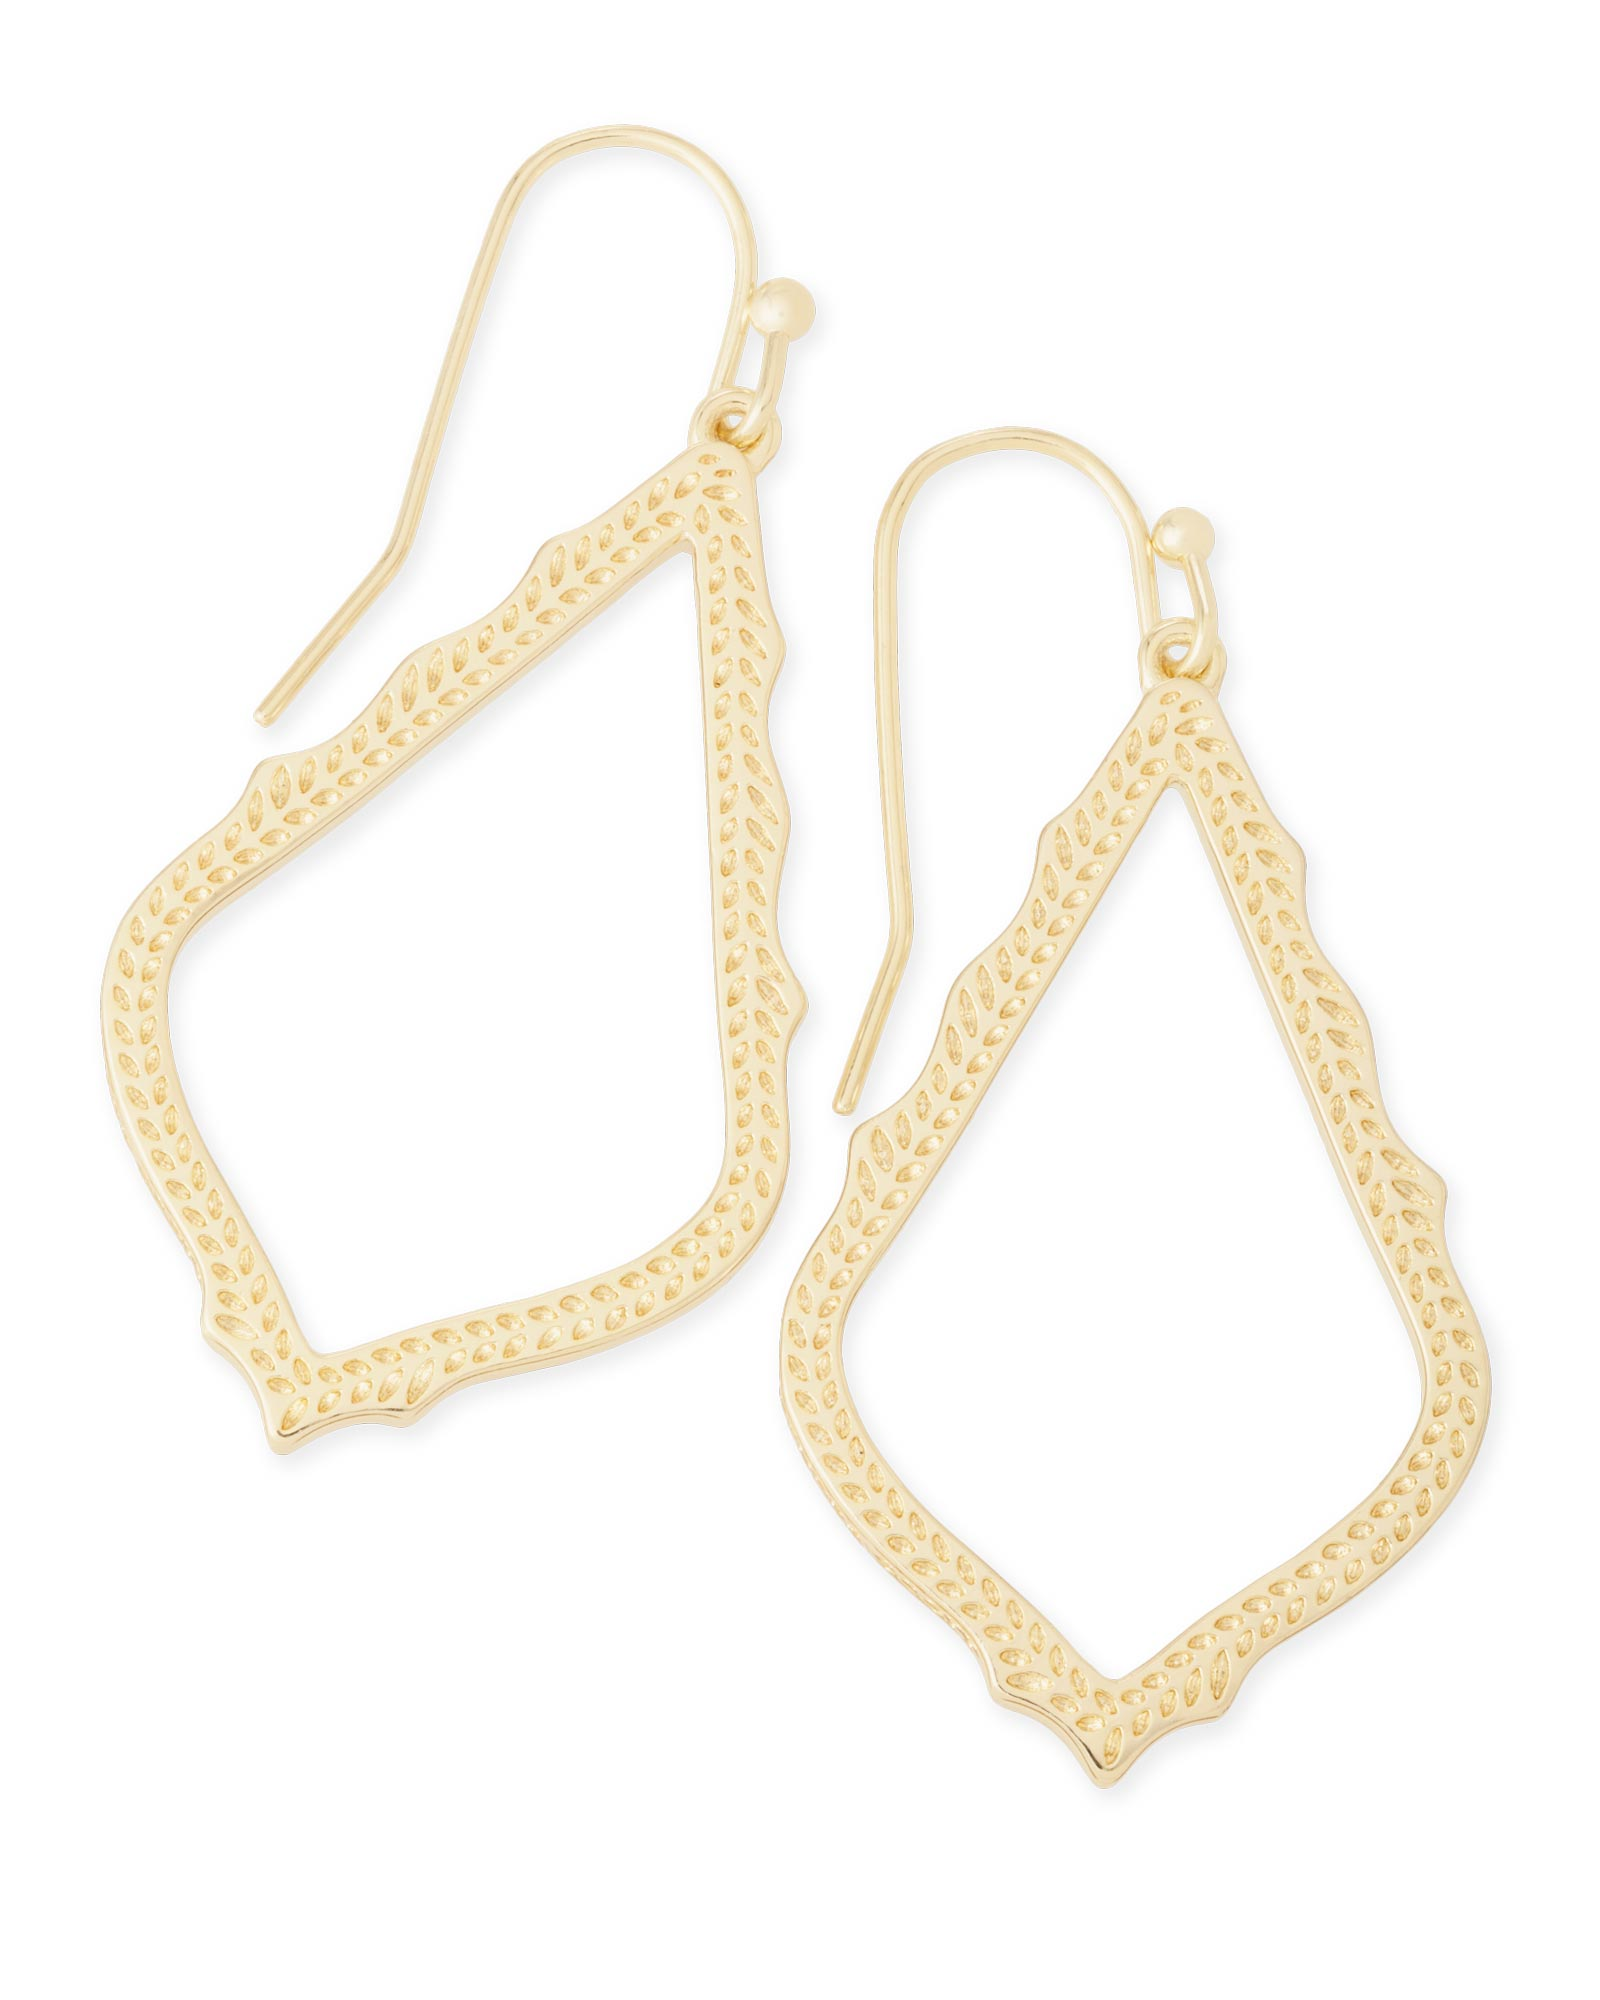 sophia drop earrings in gold kendra scott jewelry